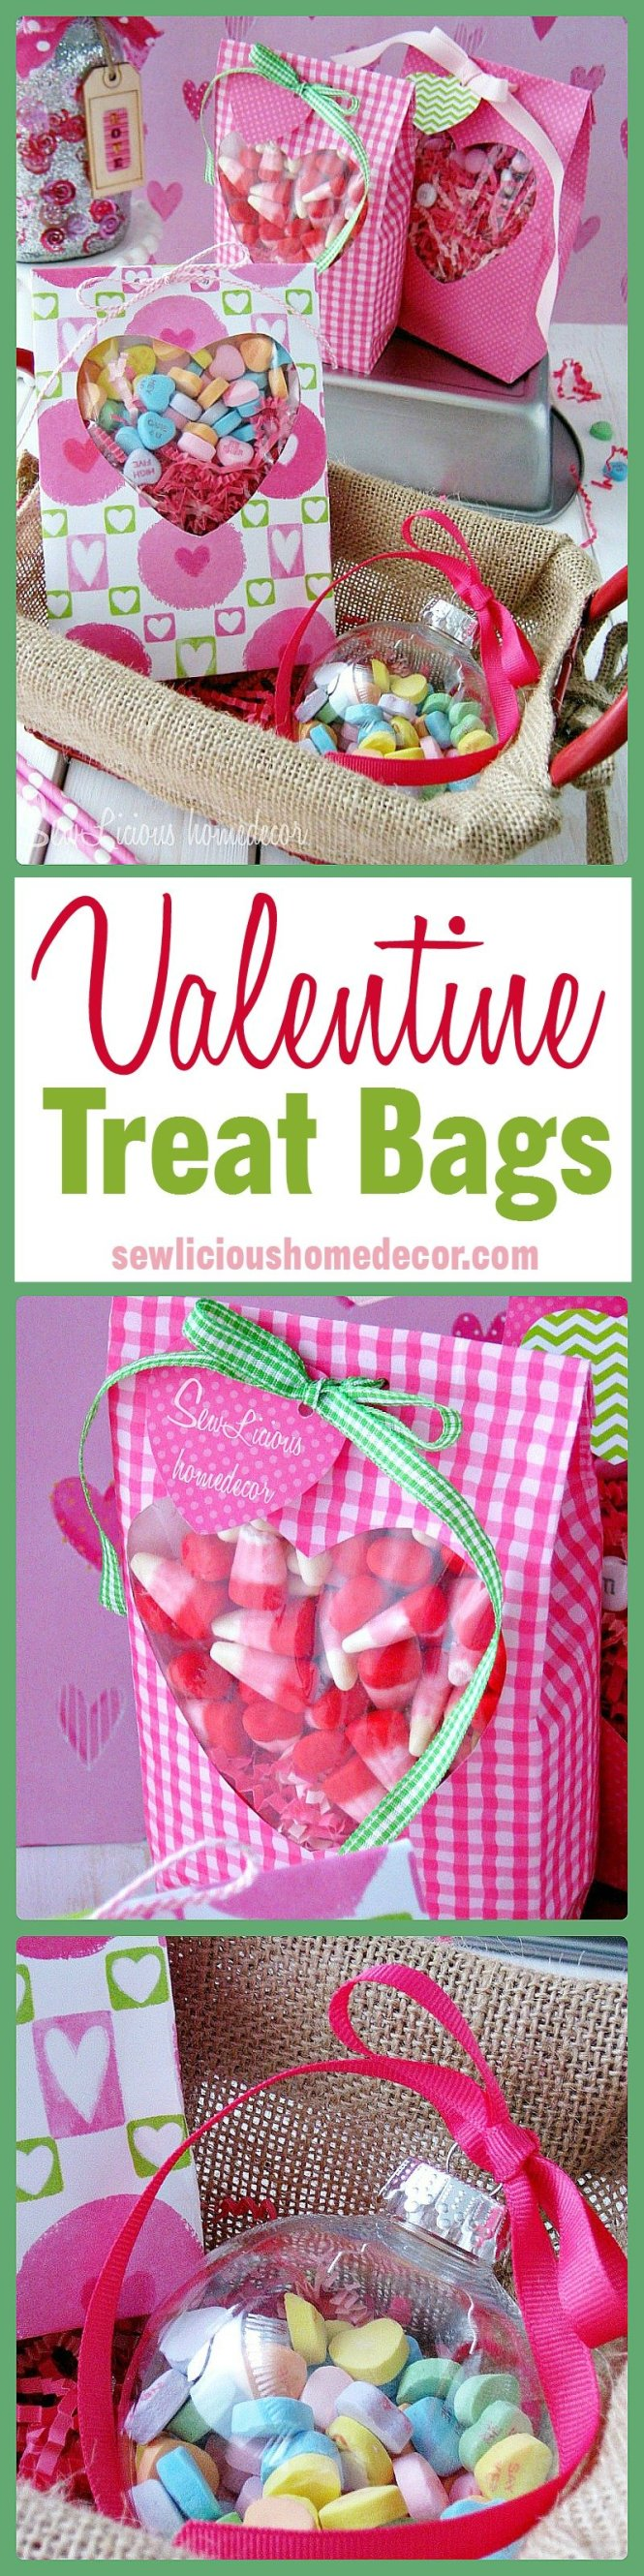 Valentine Treat Bags at sewlicioushomedecor.com